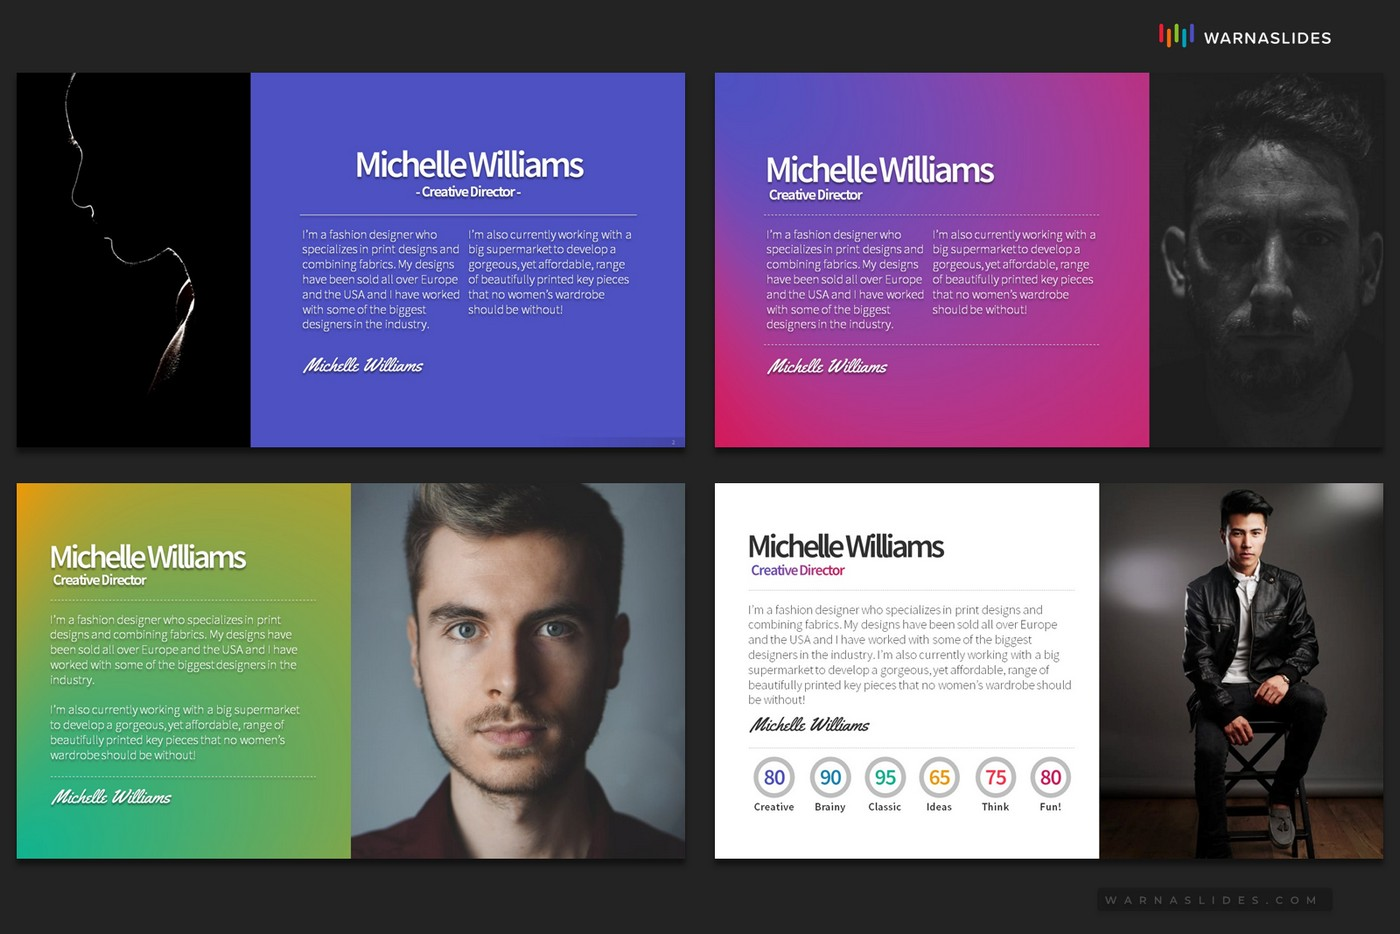 About-Me-Resume-Profile-PowerPoint-Template-2020-Skill-Expertise-for-Business-Pitch-Deck-Professional-Creative-Presentation-by-Warna-Slides-006